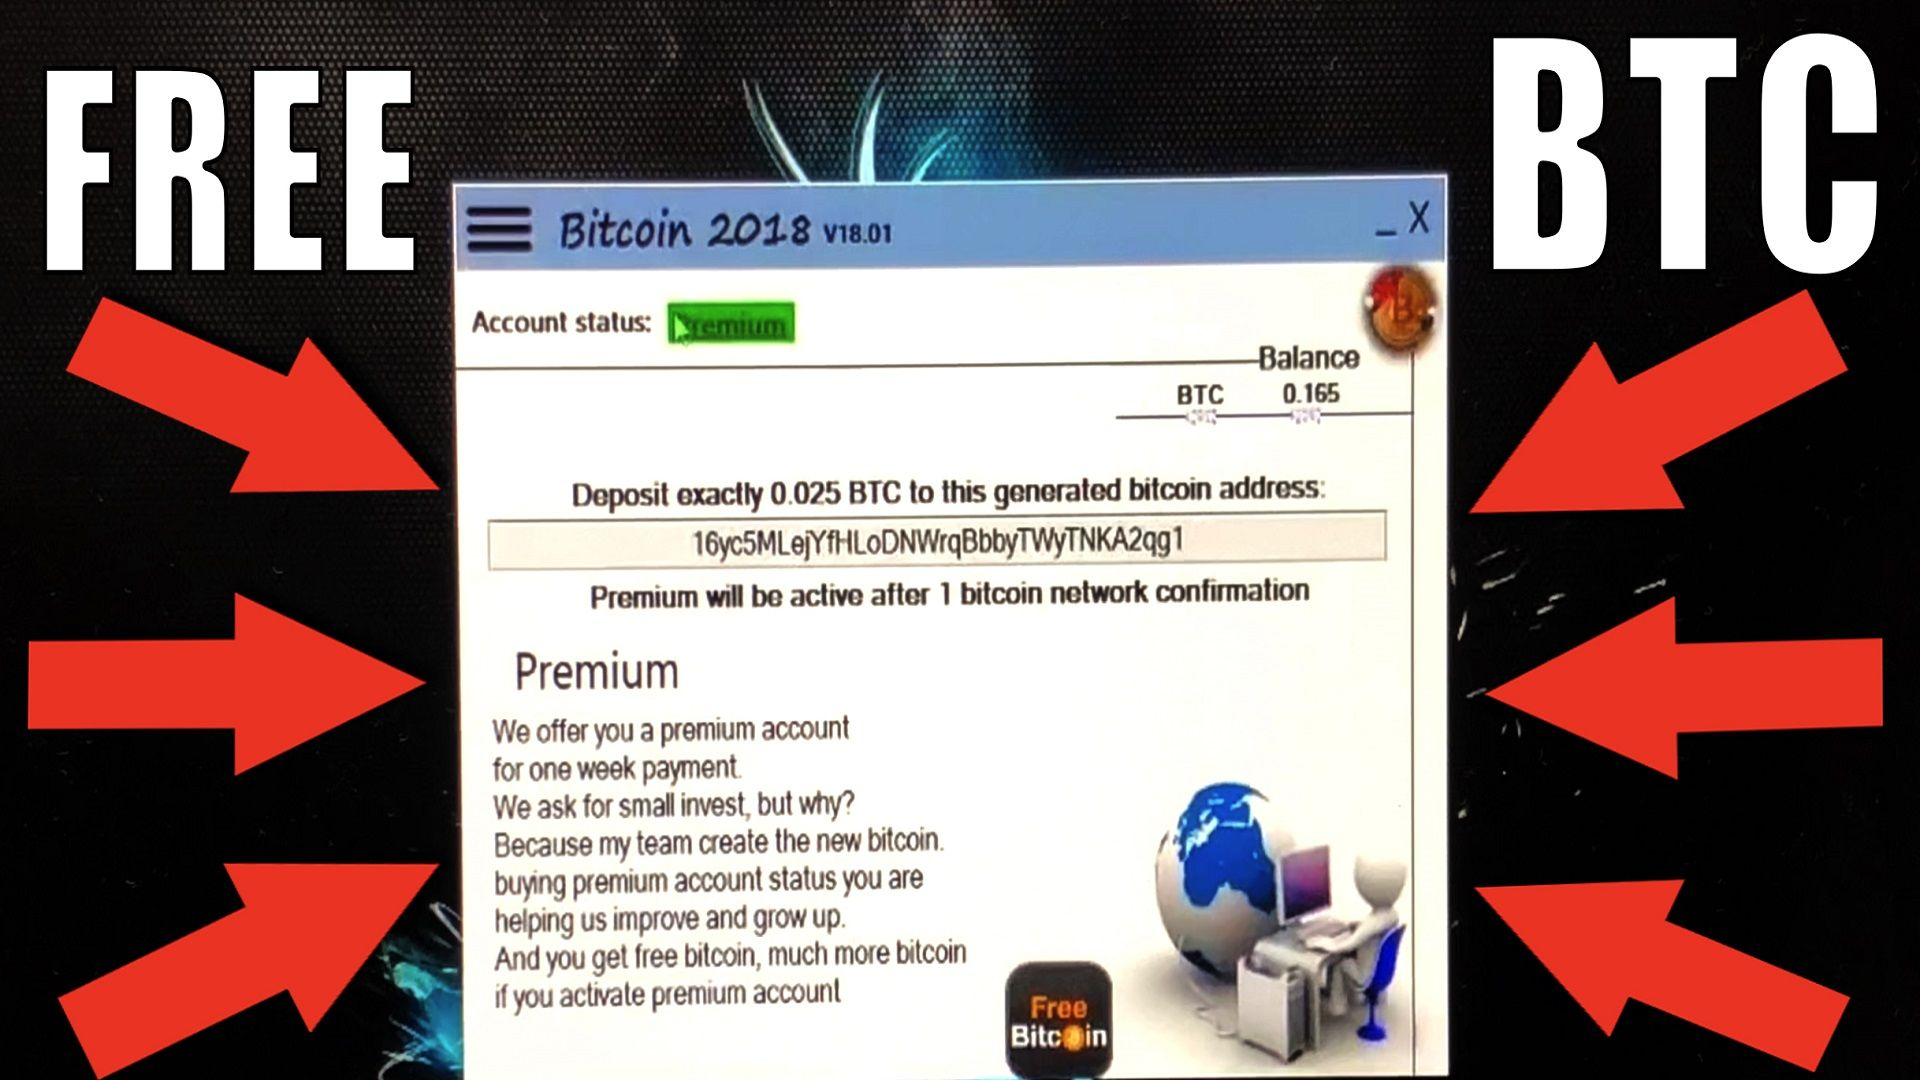 2018] Free BTC Hack! New Software Free Bitcoin 100% Work